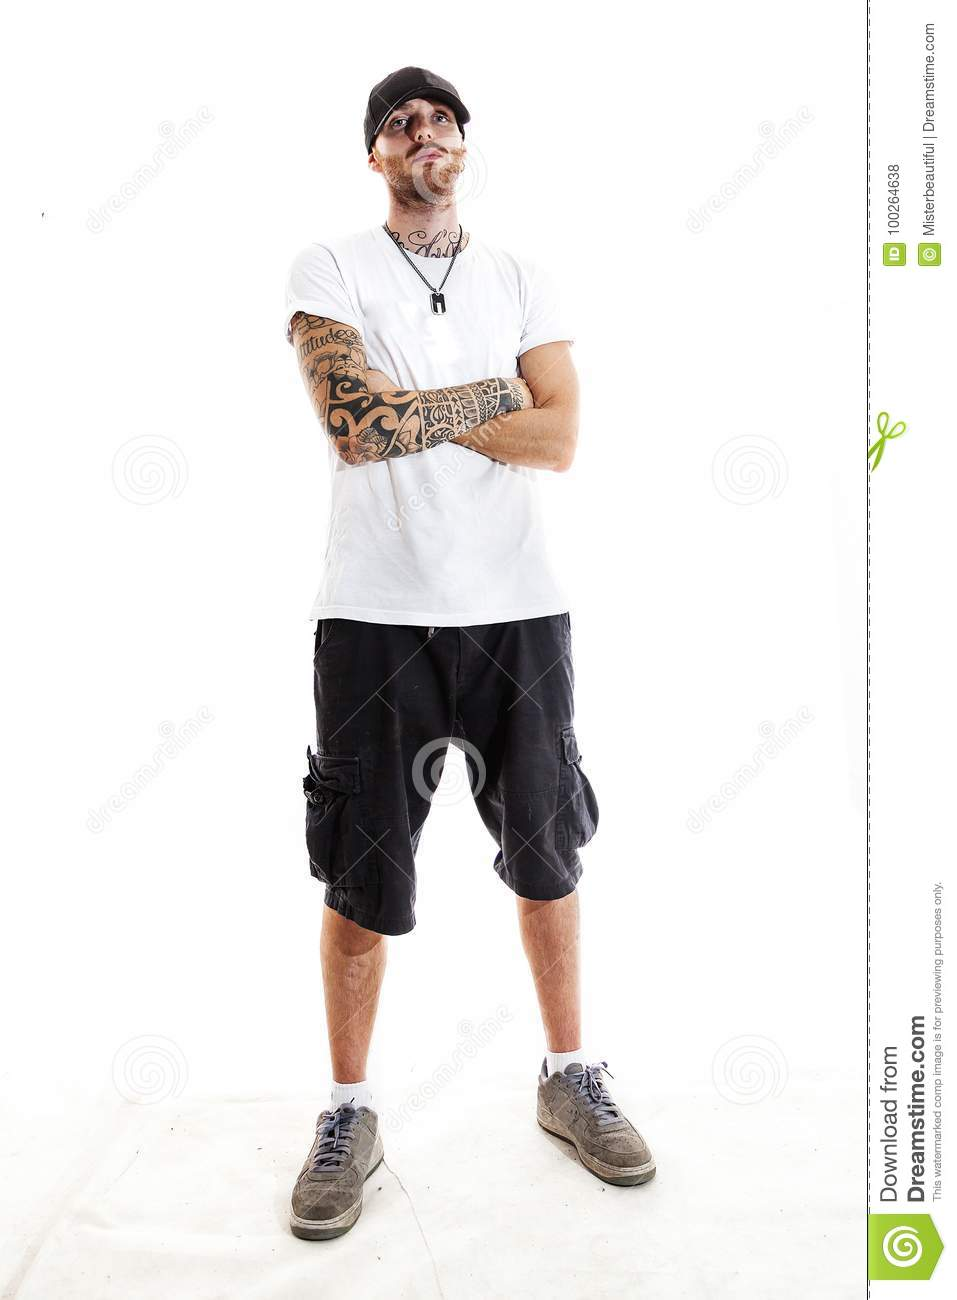 Rapper With Z Tattoed On His Face: Tattooed Rap Singer Posing In Studio Stock Photo